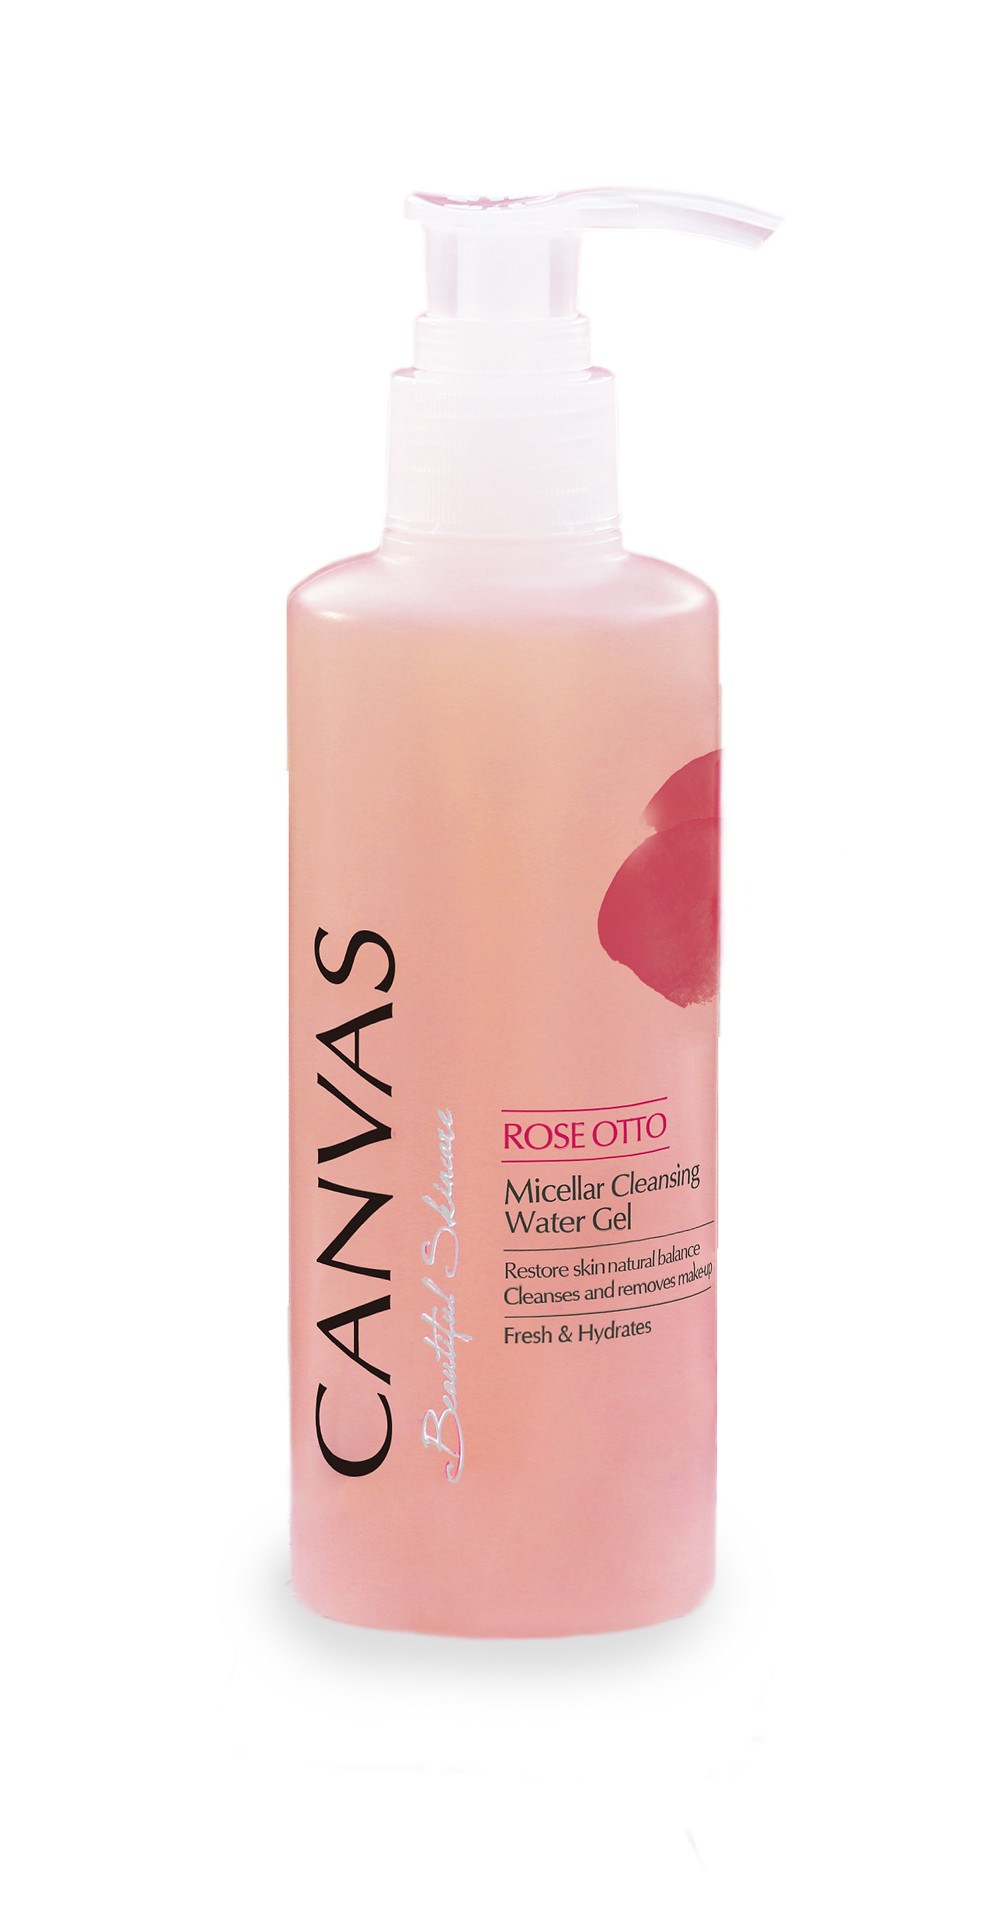 CANVAS Rose Otto Micellar Cleansing Water Gel